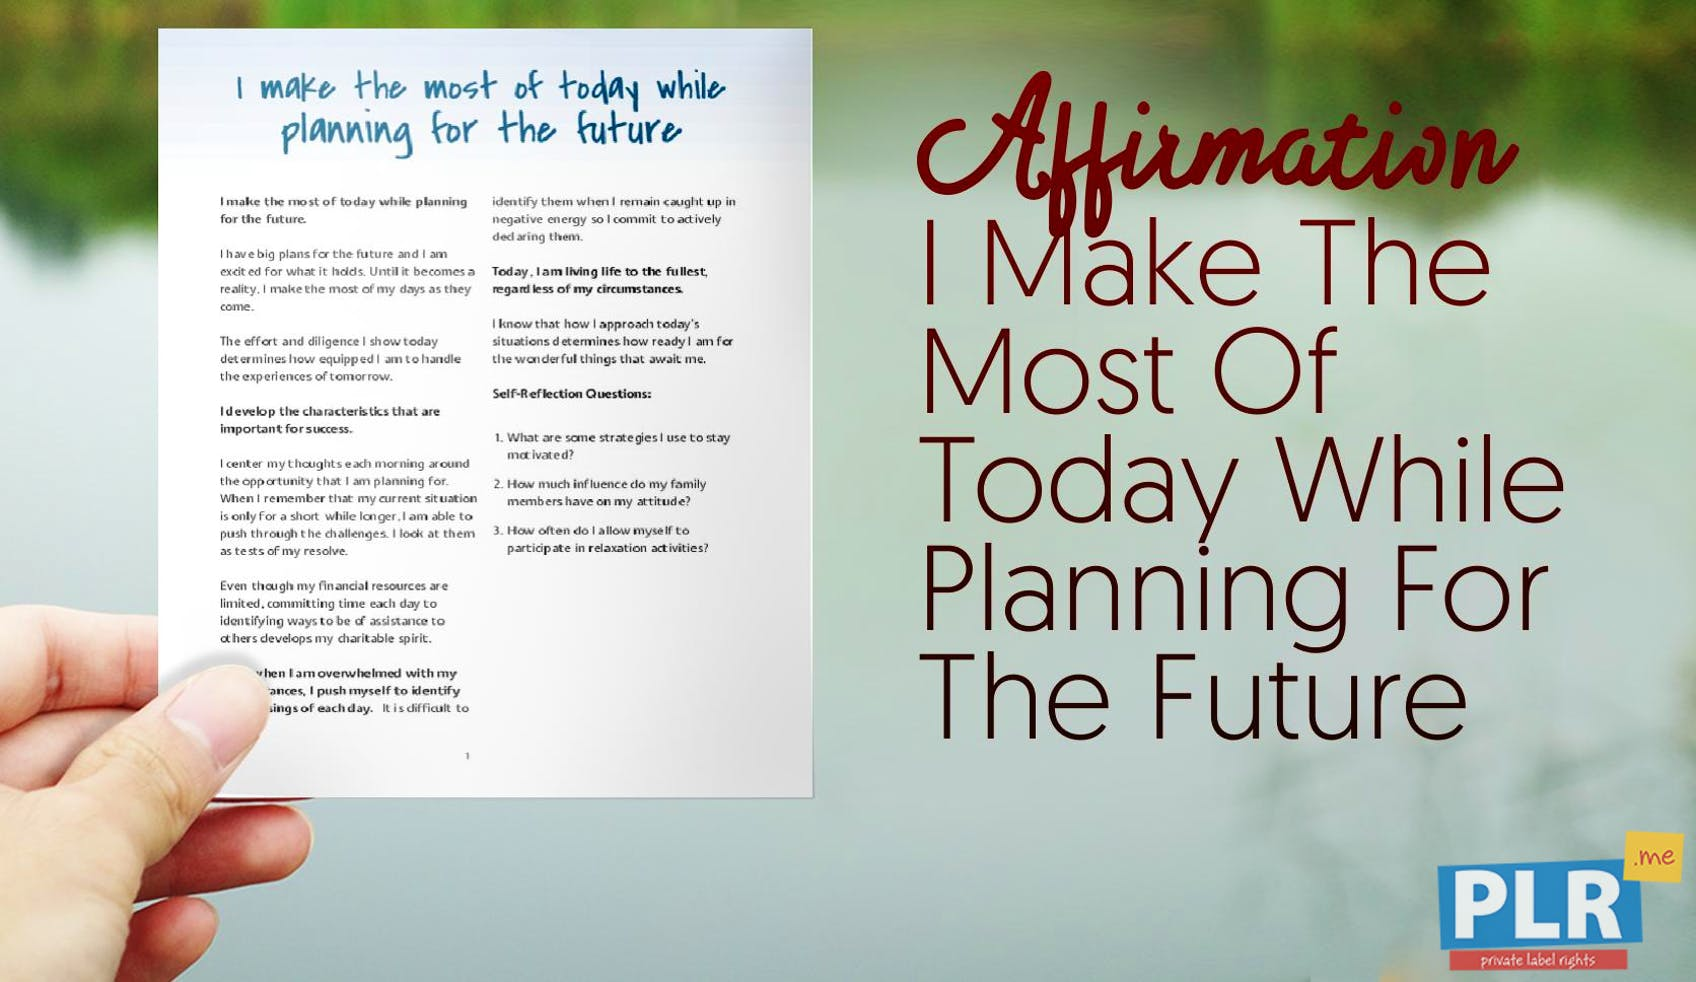 I Make The Most Of Today While Planning For The Future